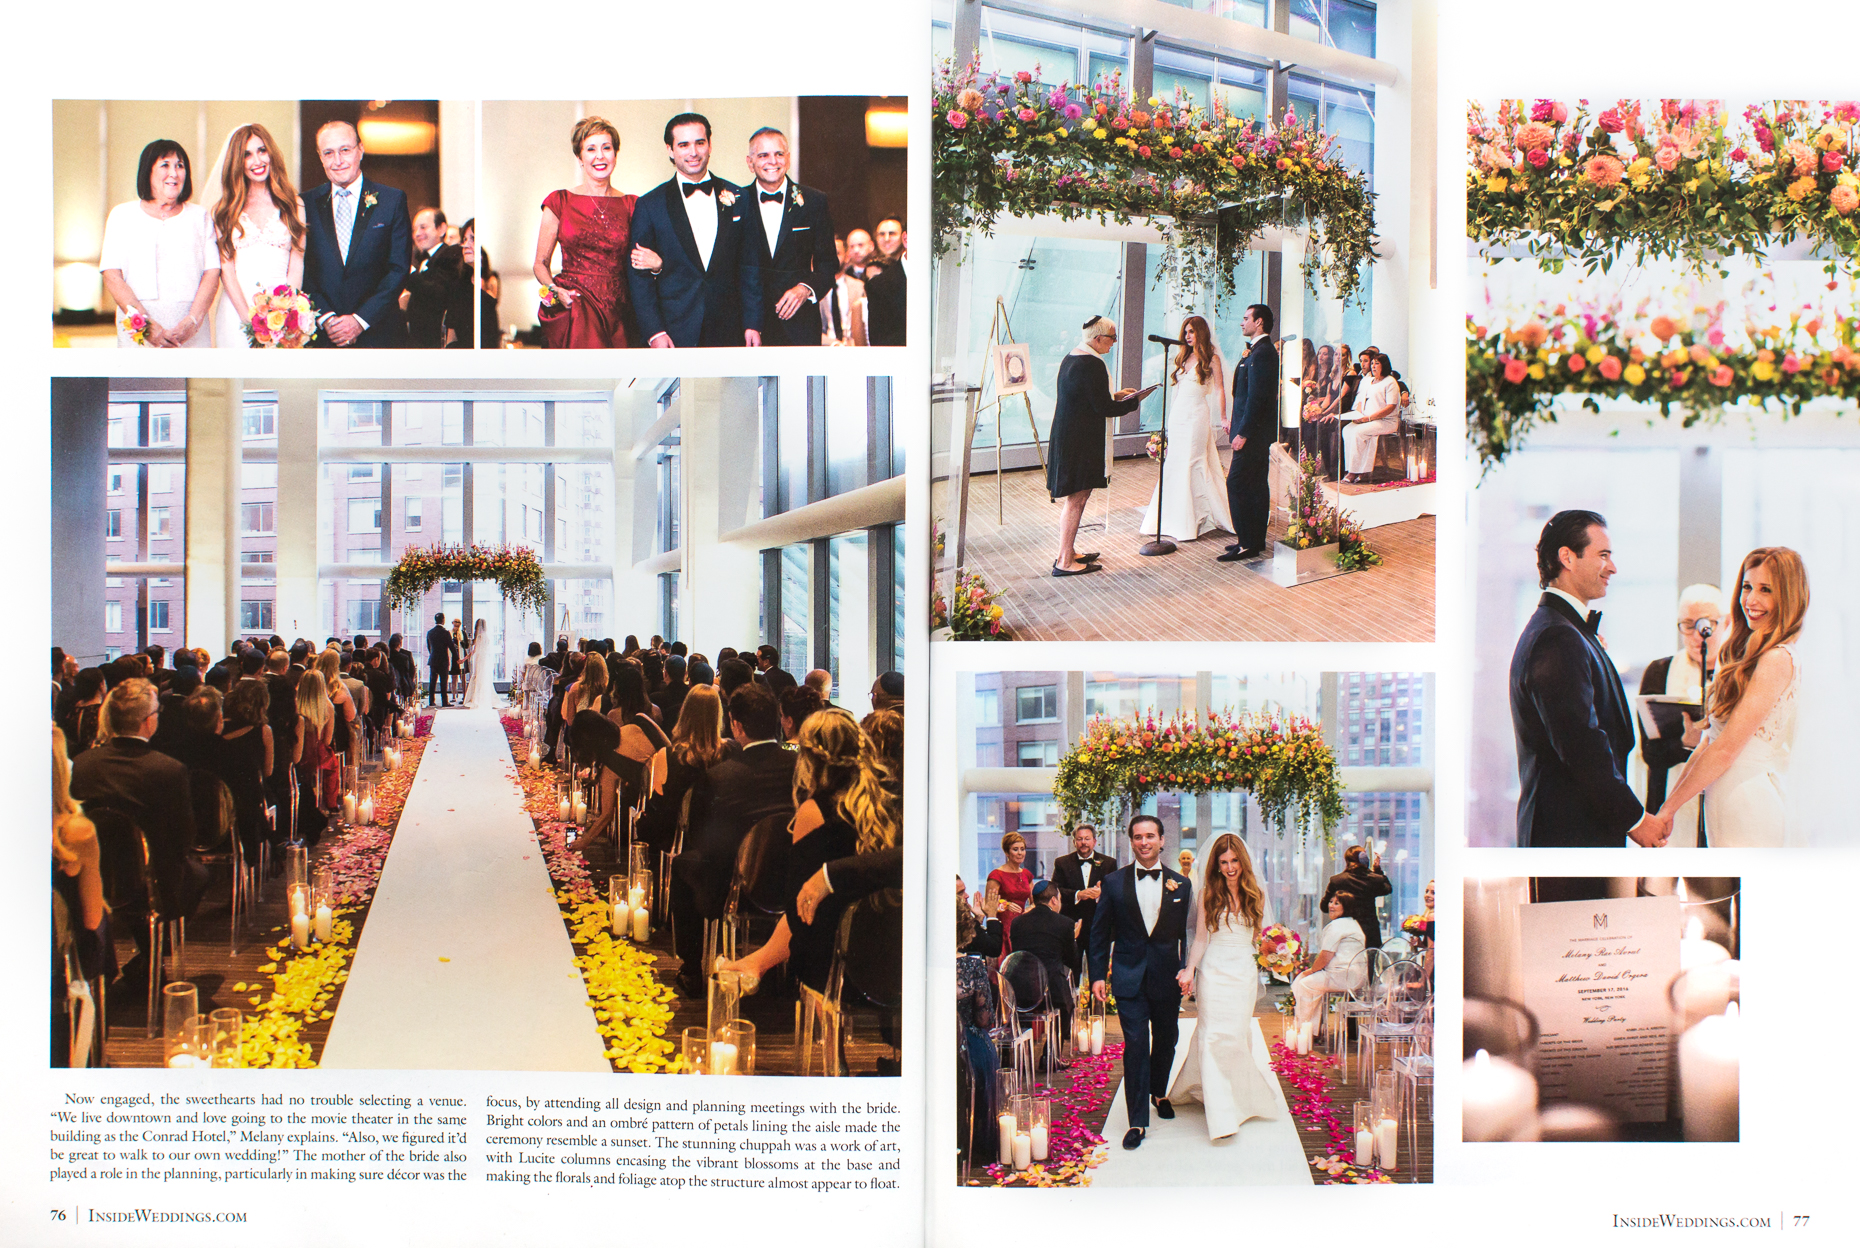 106_InsideWeddings_spread3_spring2017